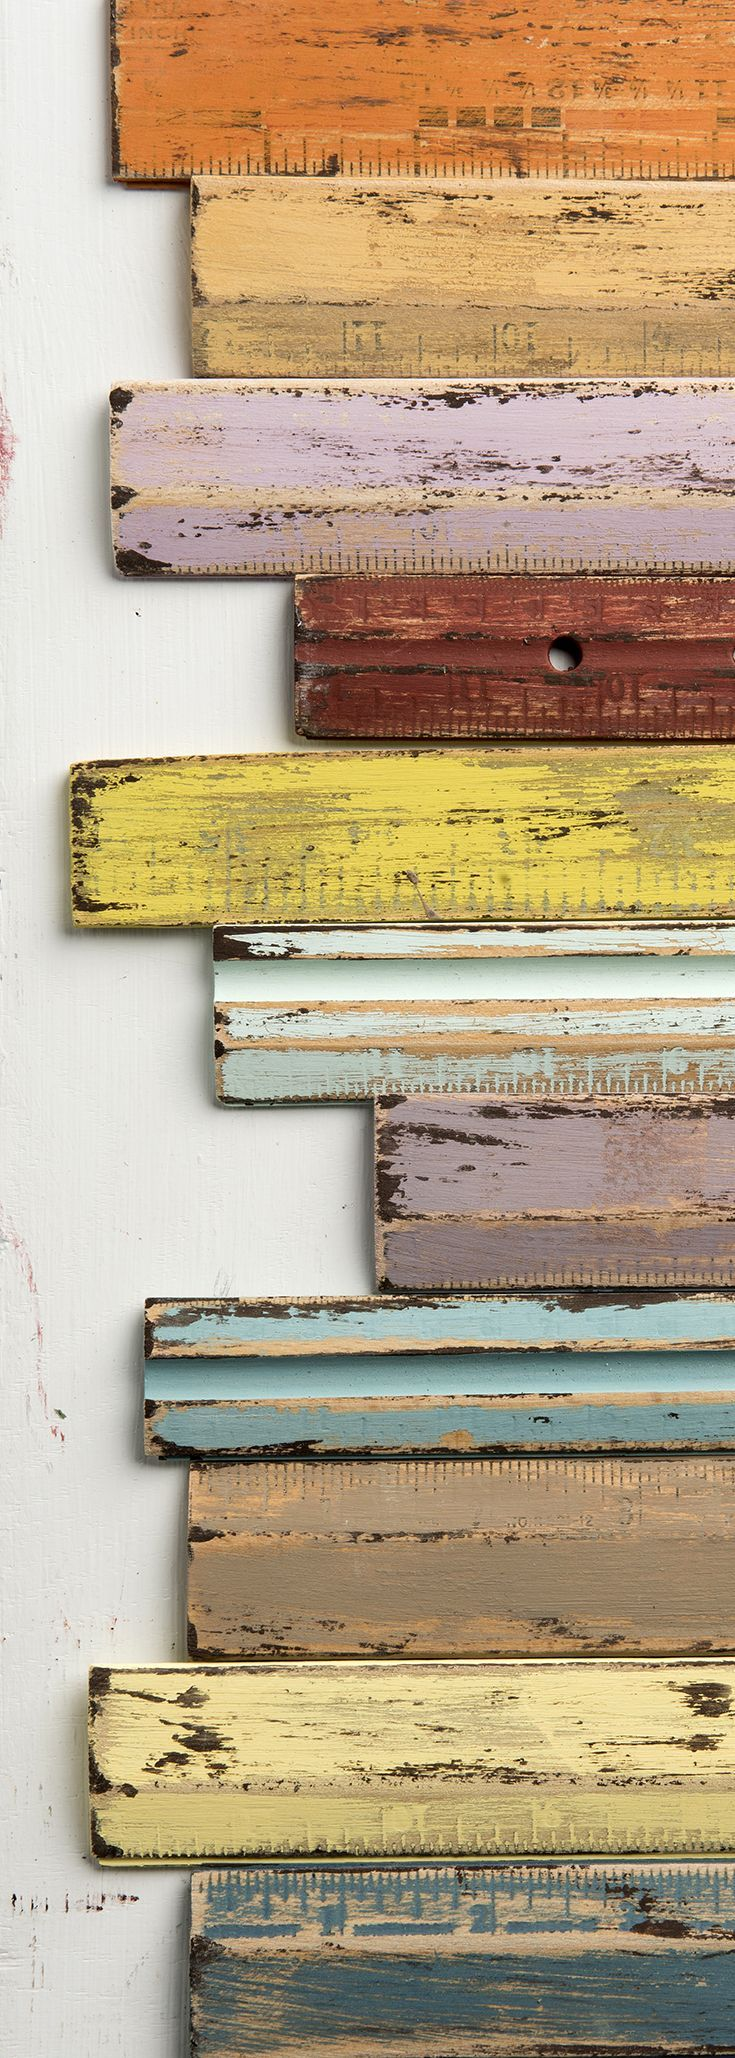 Wooden crafts to paint - Find This Pin And More On Craft Paint Creations